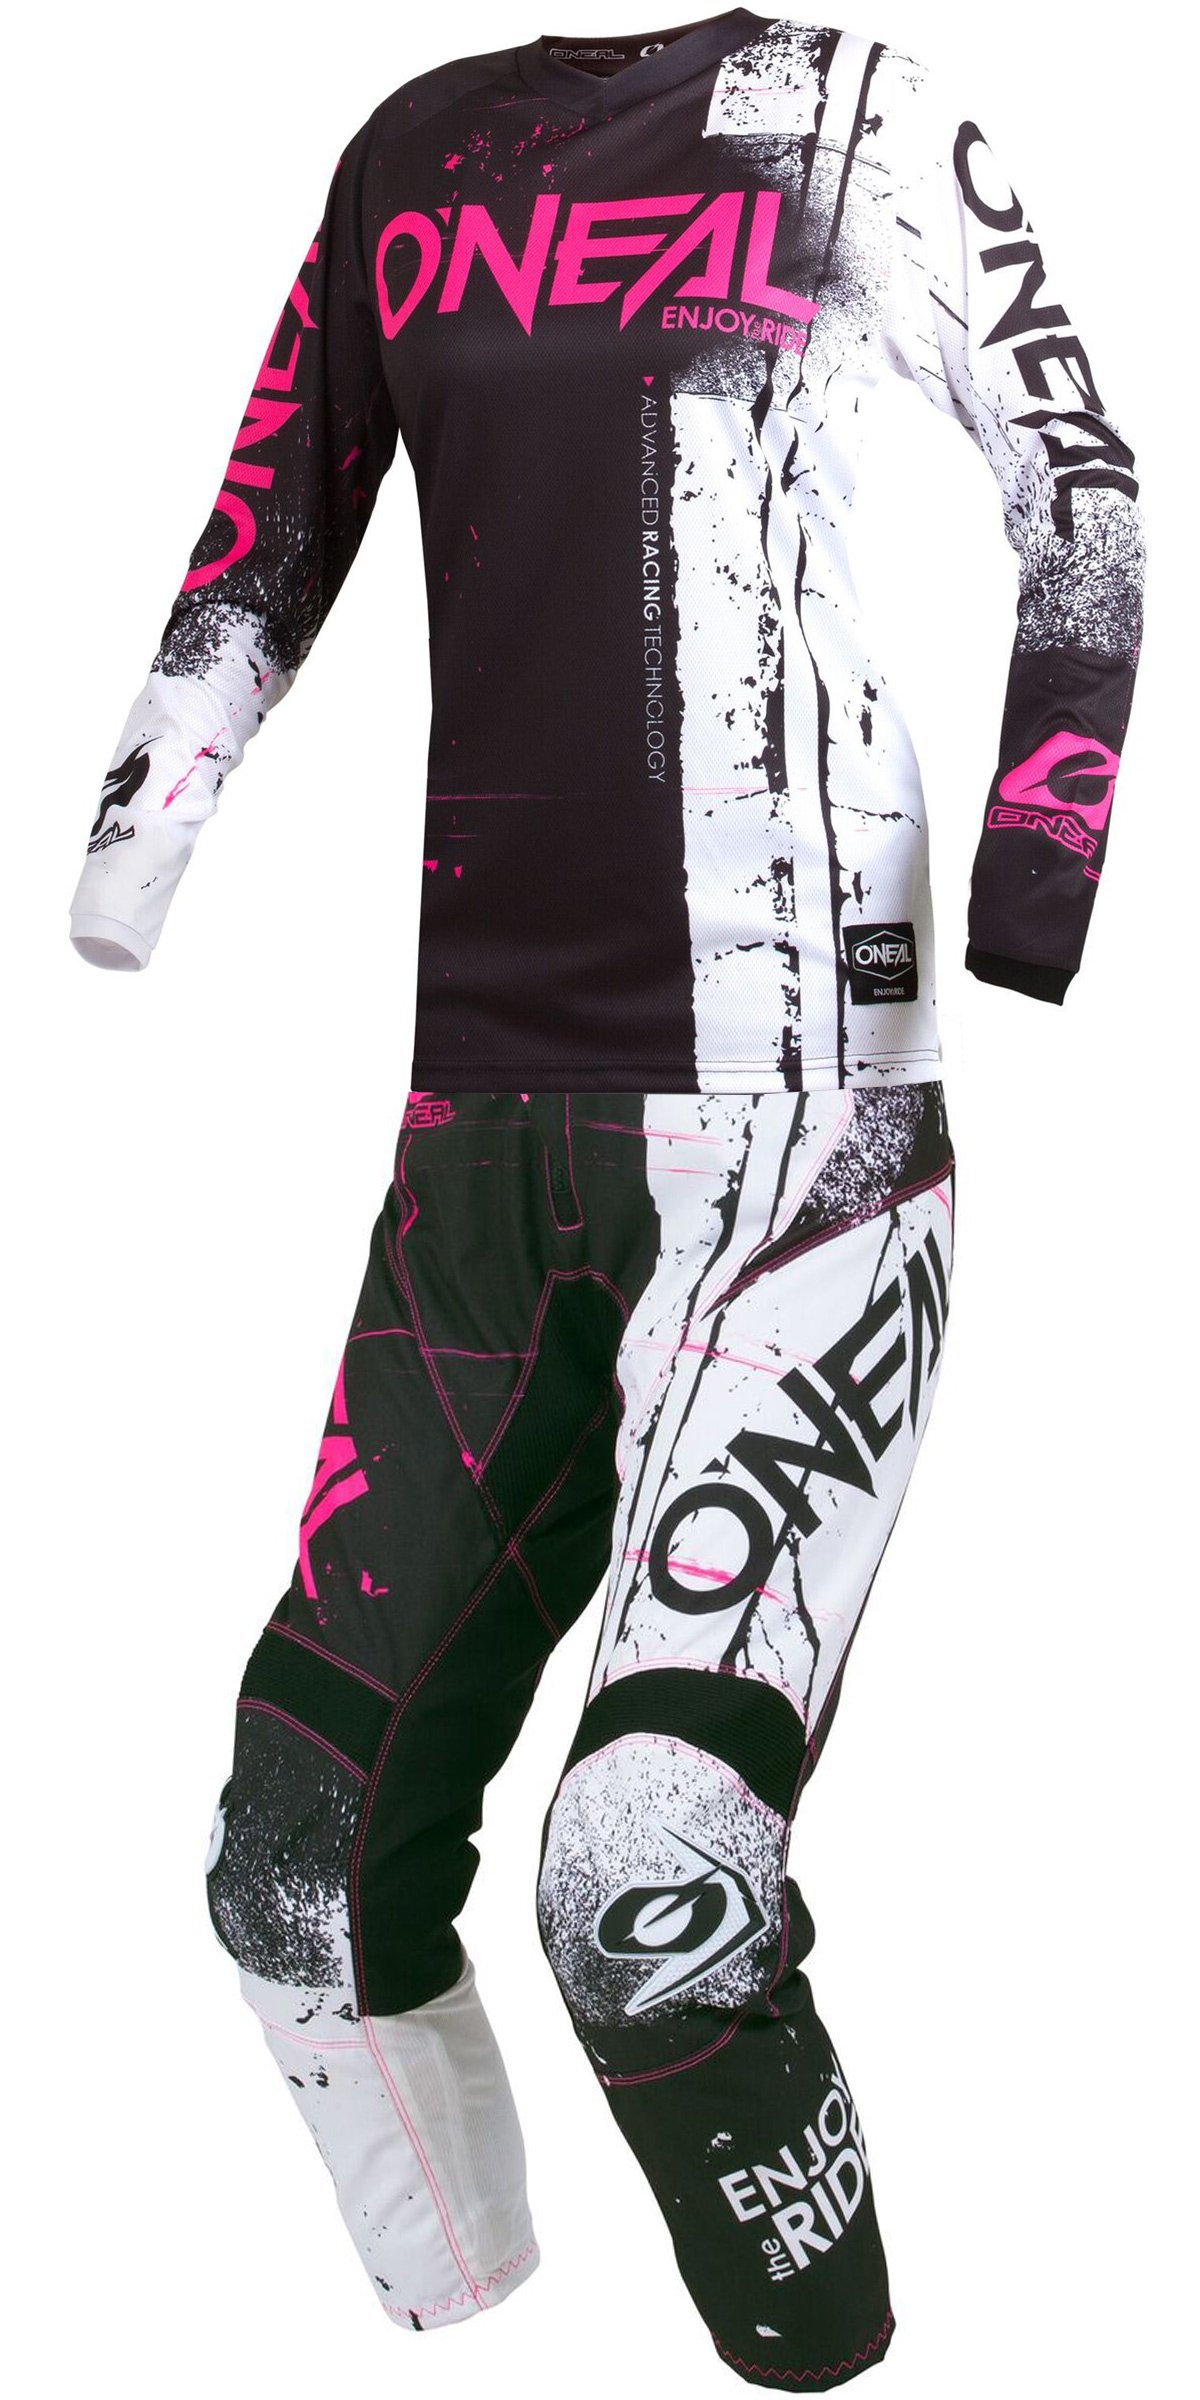 O'Neal - 2019 Element Shred (Youth Girls Pink Y-XLarge/Y-26W) MX Riding Gear Combo Set, Motocross Off-Road Dirt Bike Jersey & Pant